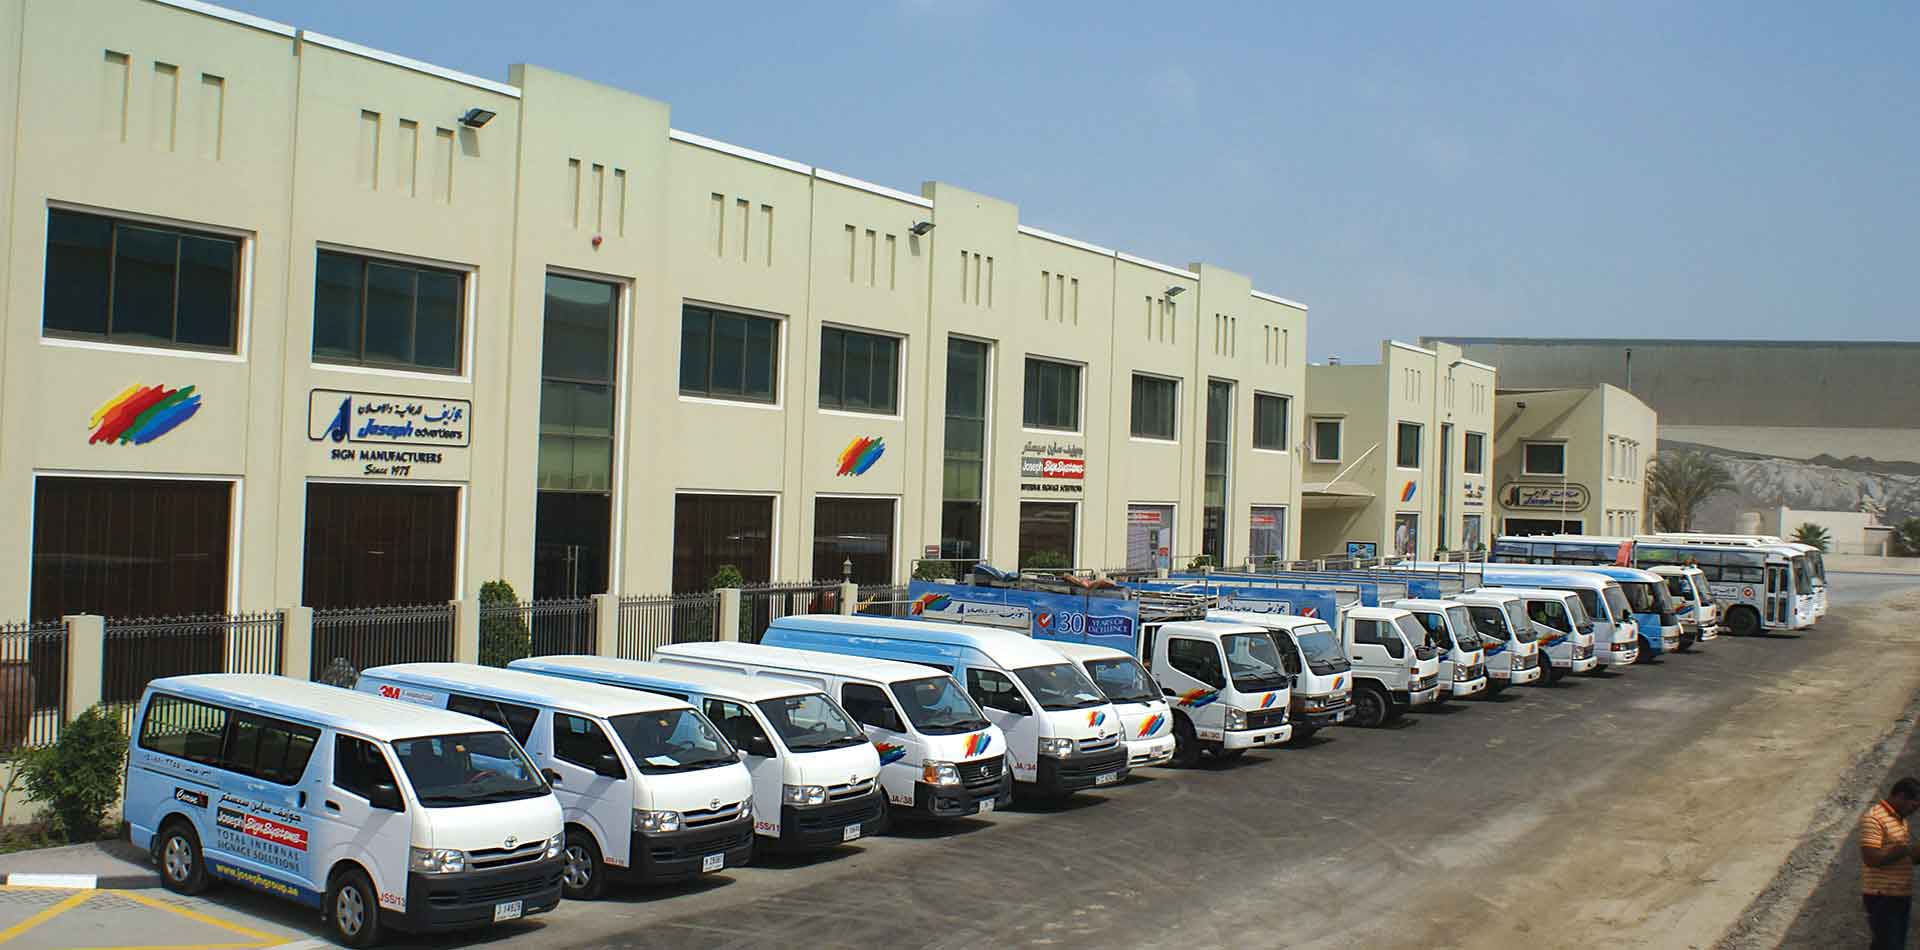 Vehicles of Joseph Group